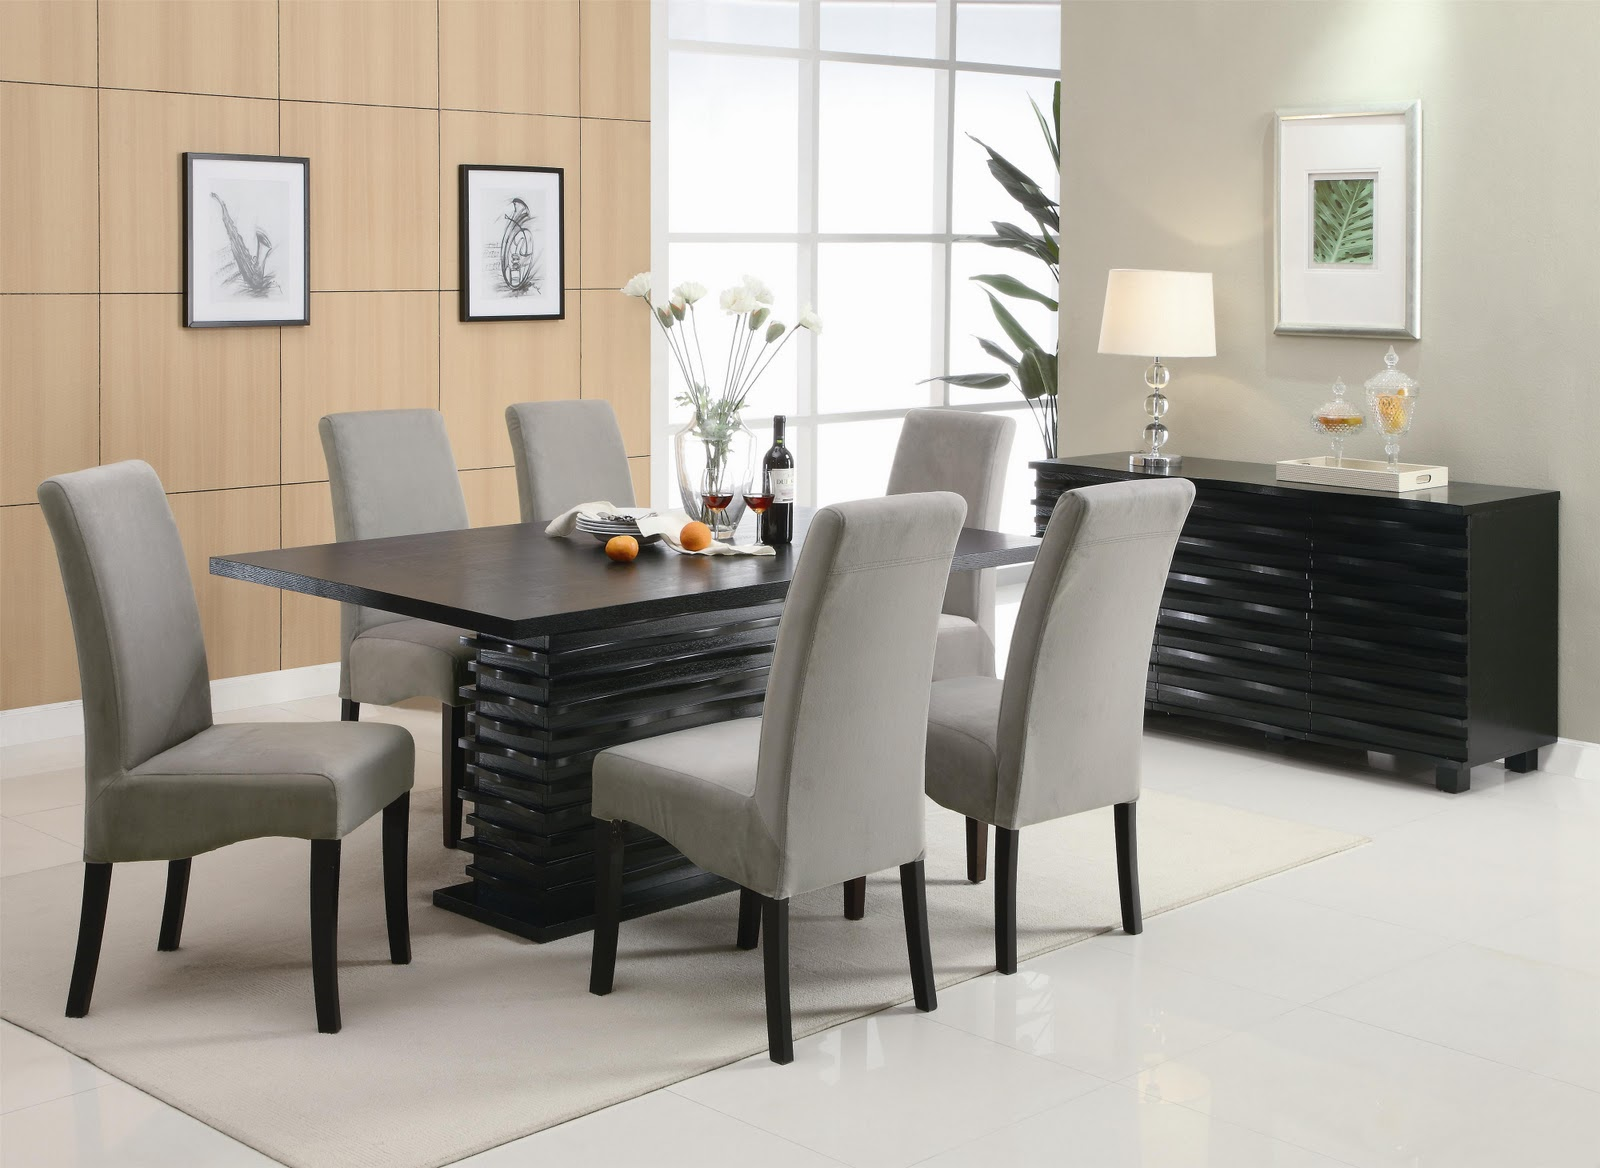 Coaster – Stanton 10206 Contemporary Dining Room Collection